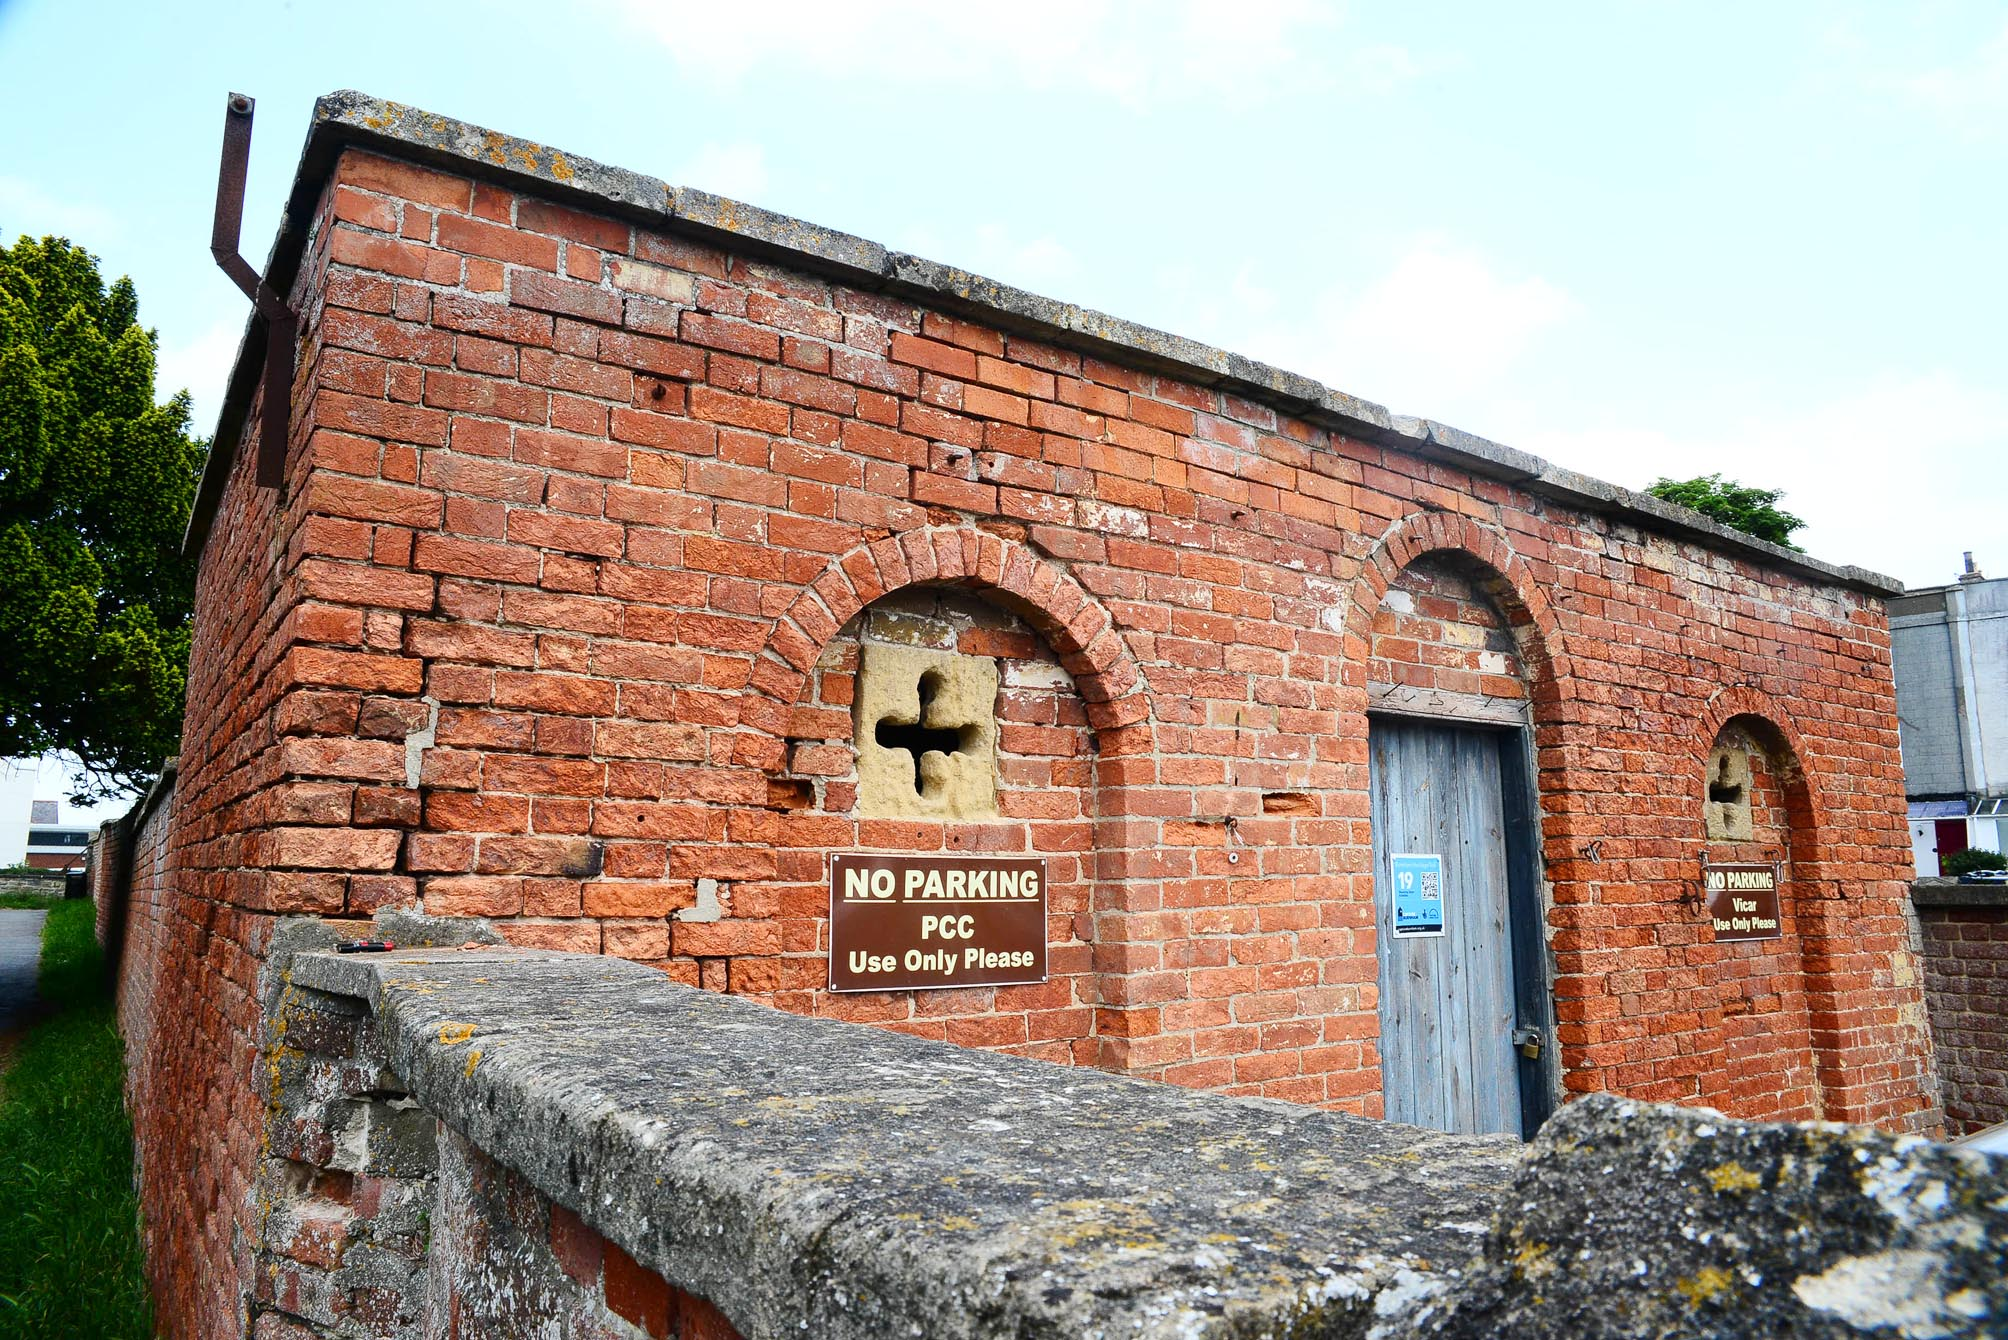 PROJECT: Funds are being raised to restore this listed stable in Burnham-on-Sea